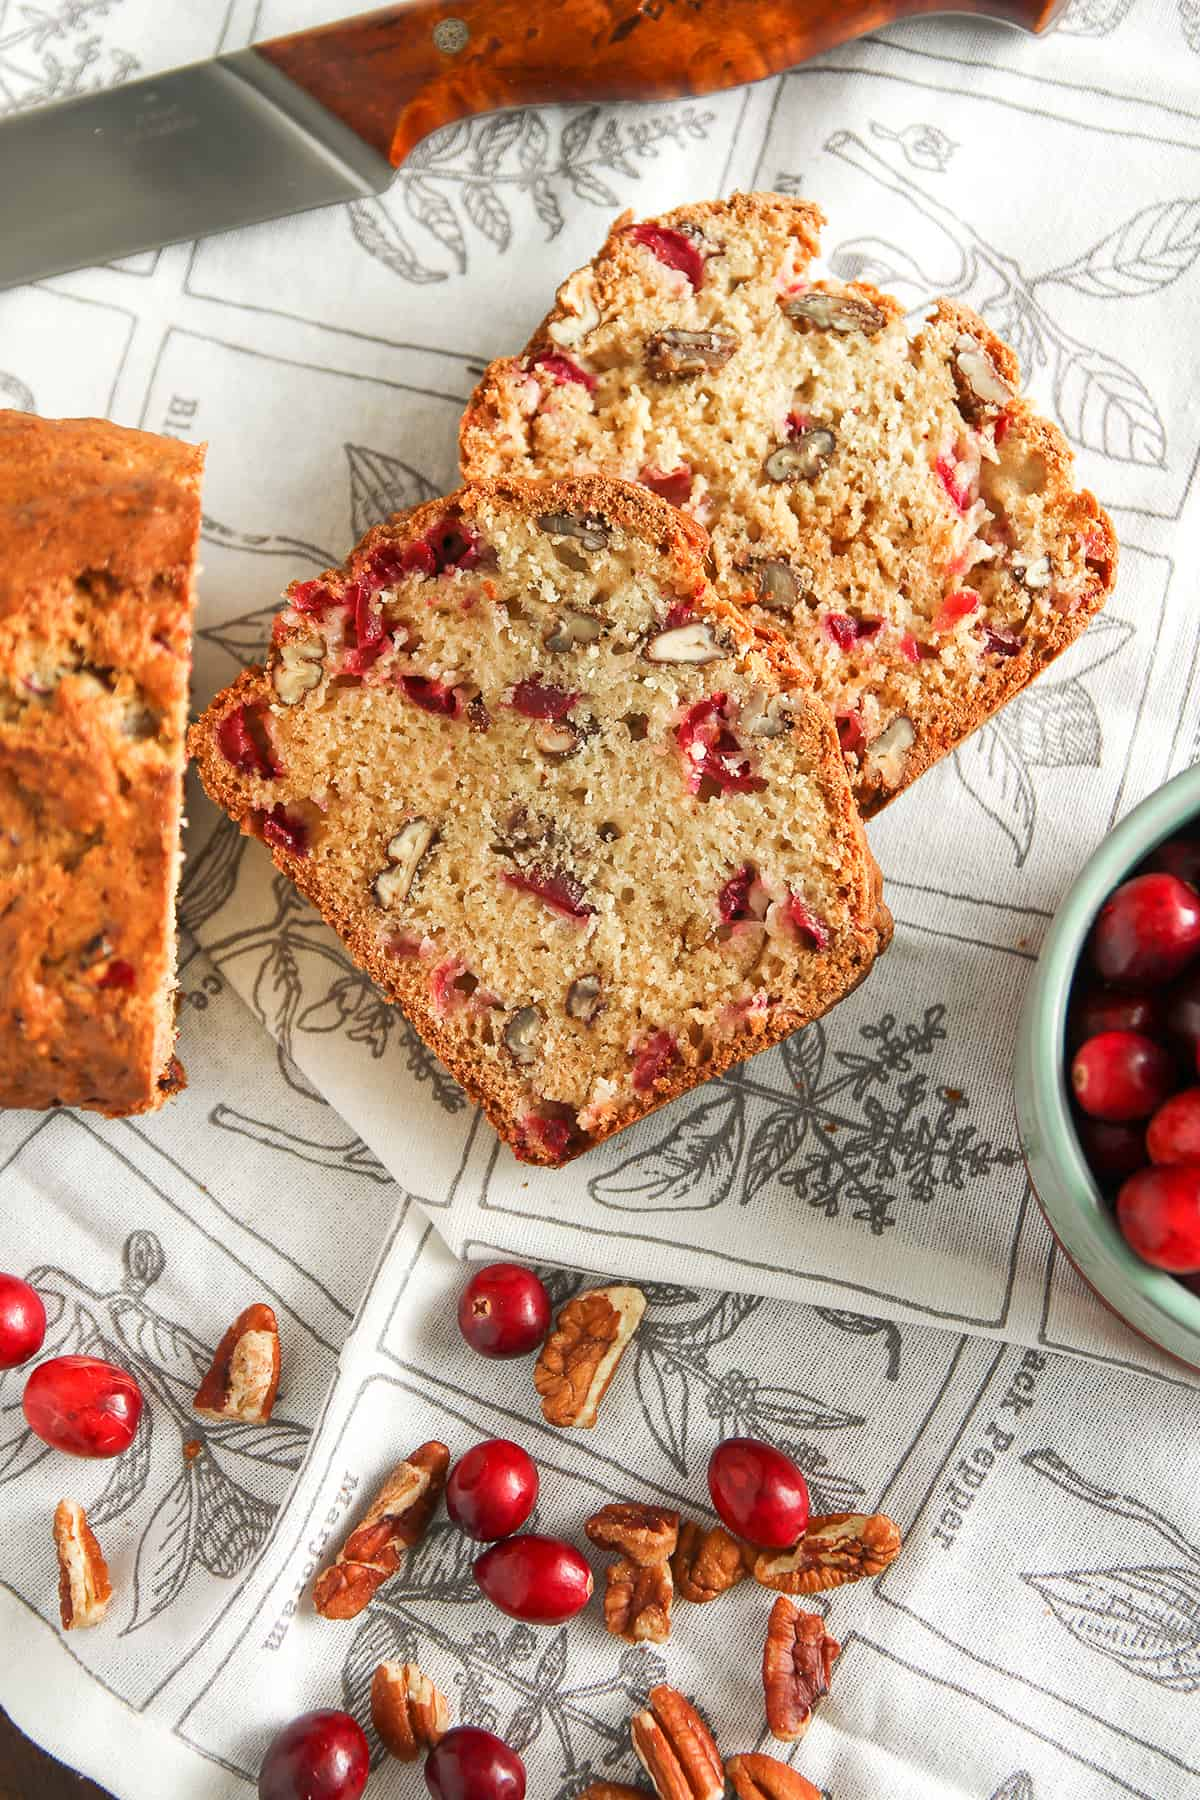 Cranberry Nut Bread is a tart and sweet quick bread you'll want to make again and again.